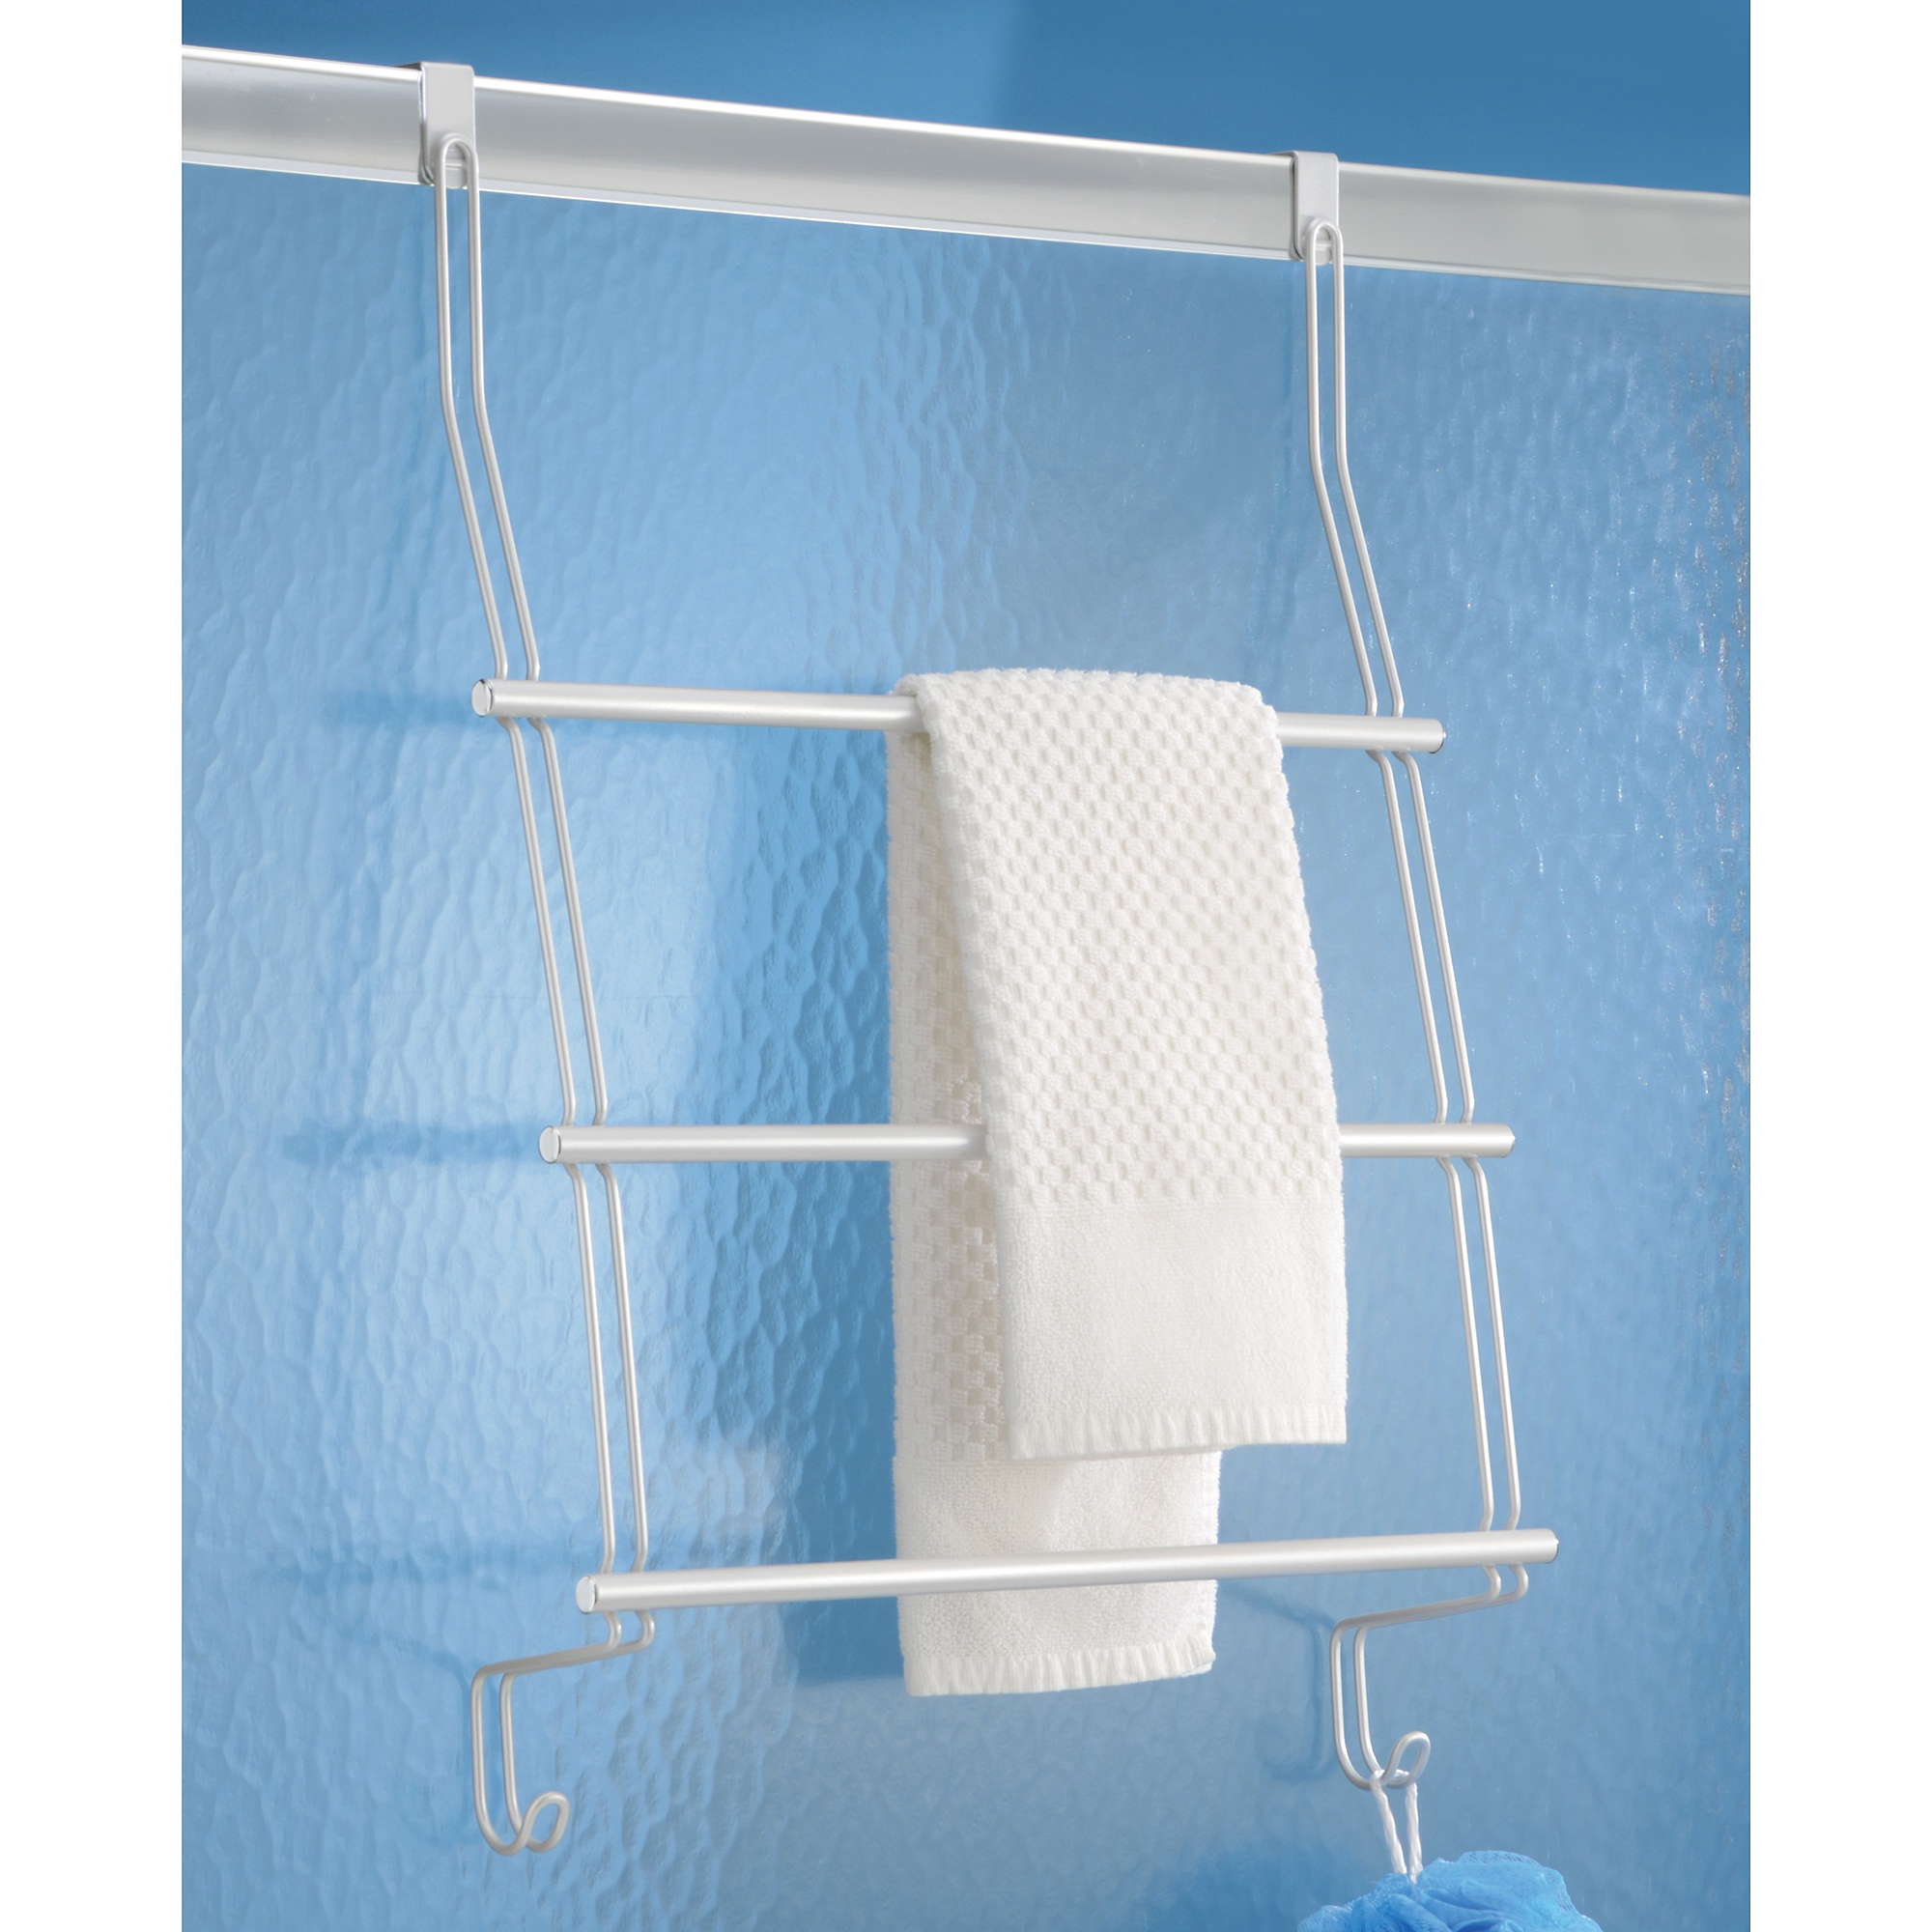 InterDesign Classico Over-the-Door Towel Rack